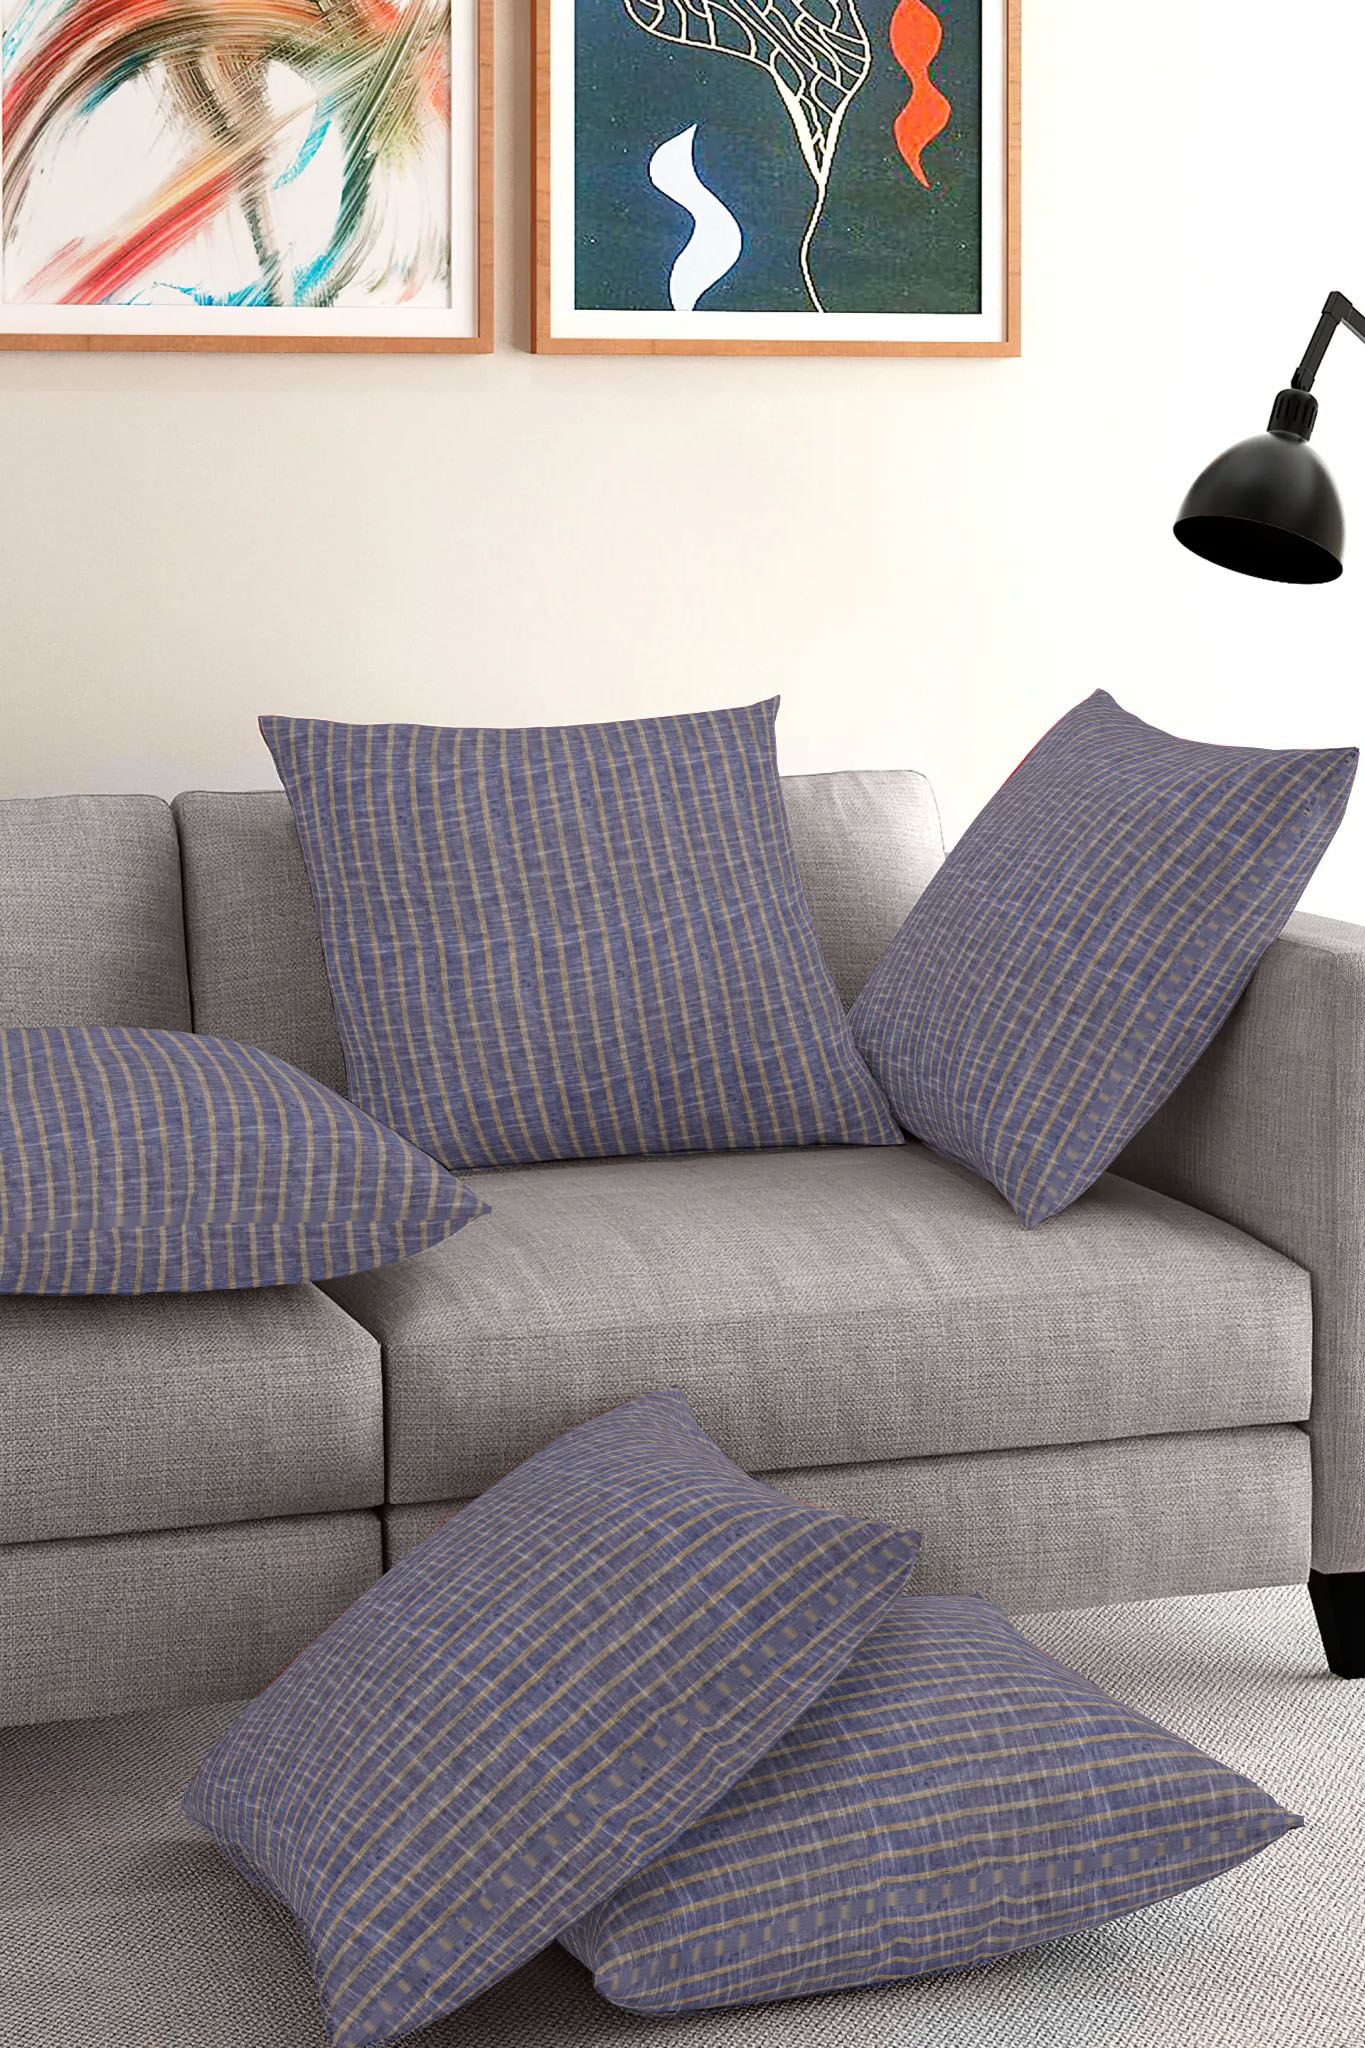 Set of 5-Gray White Cotton Cushion Cover-35374-16x16 Inches